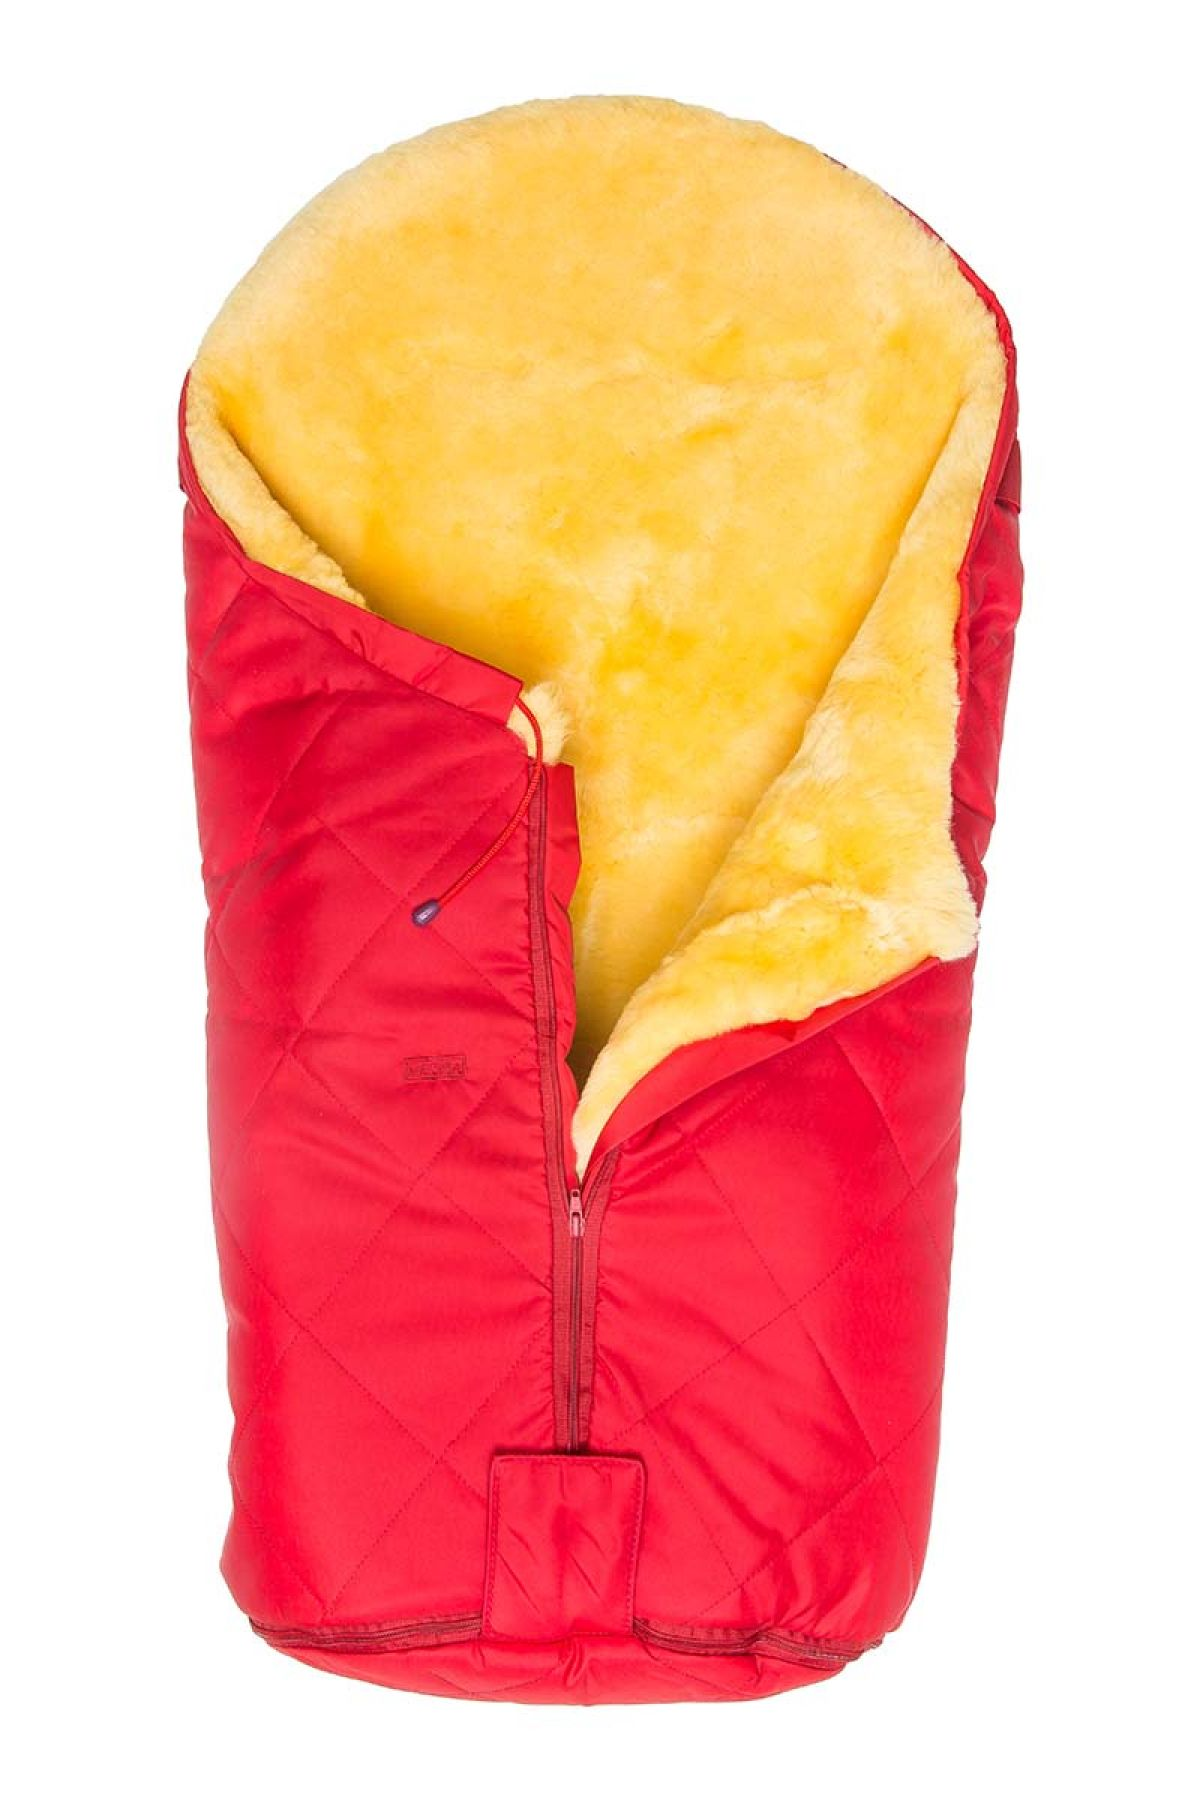 Sheepy Care Zippered Baby Sleeping Bag  MDK013 Red